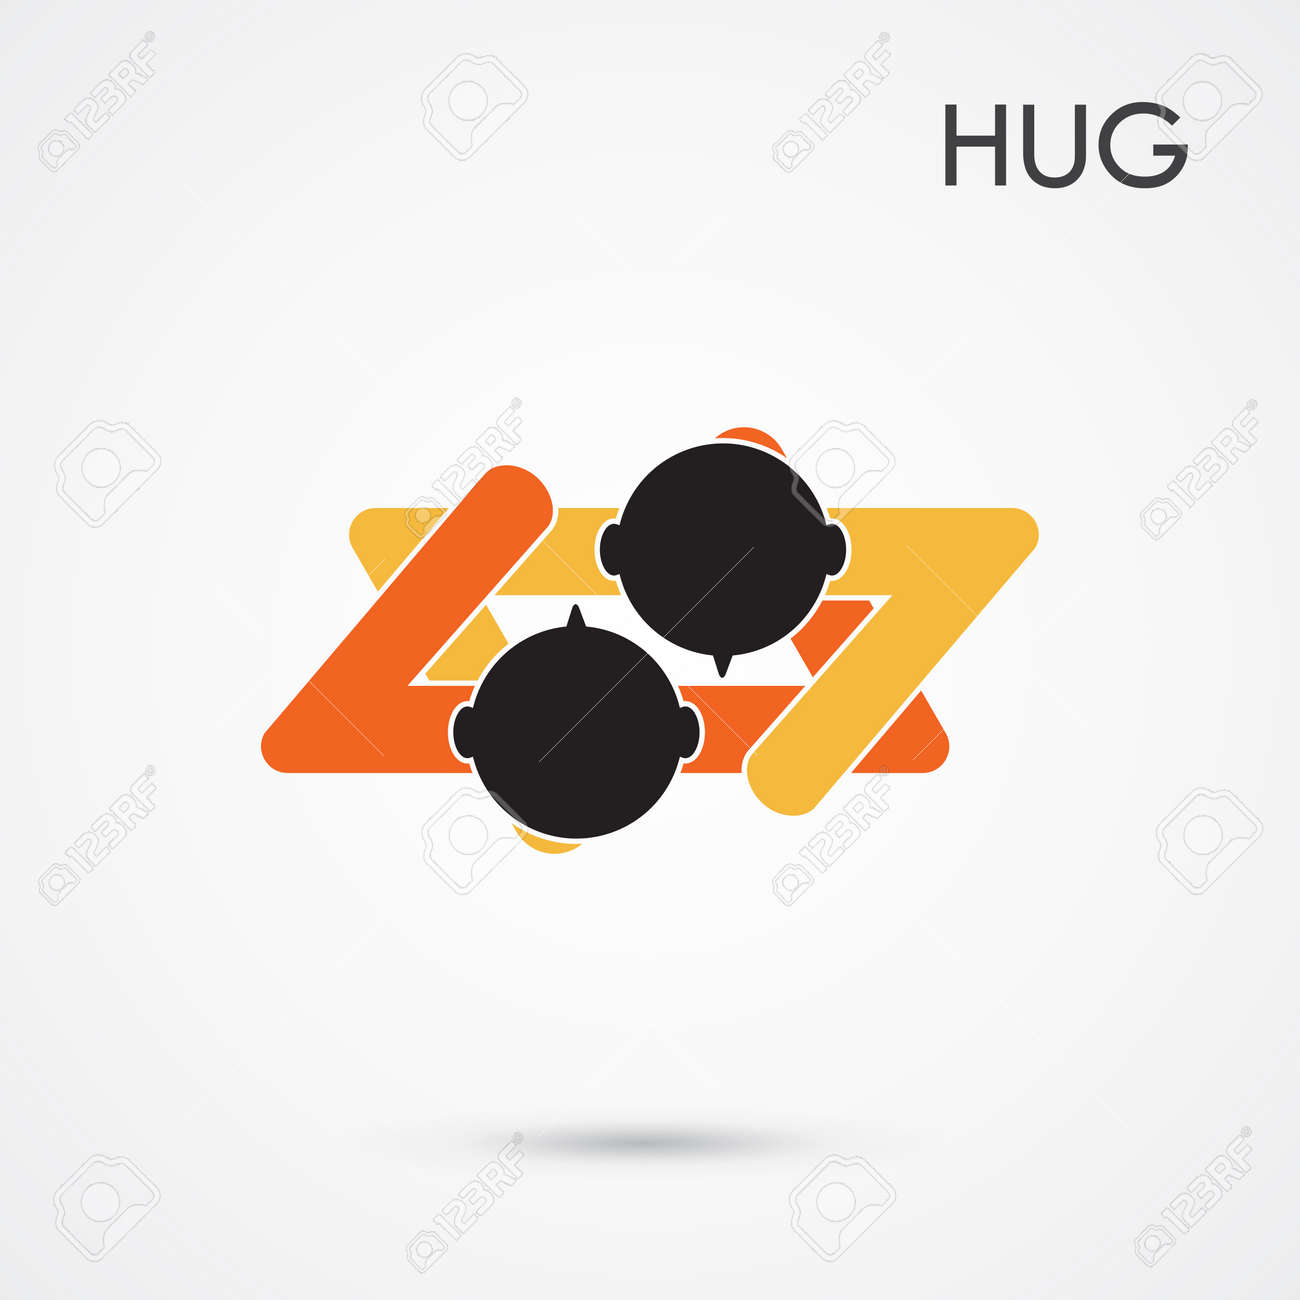 Abstract hug symbol this graphic also represents couple in love abstract hug symbol this graphic also represents couple in love hug and embrace biocorpaavc Gallery